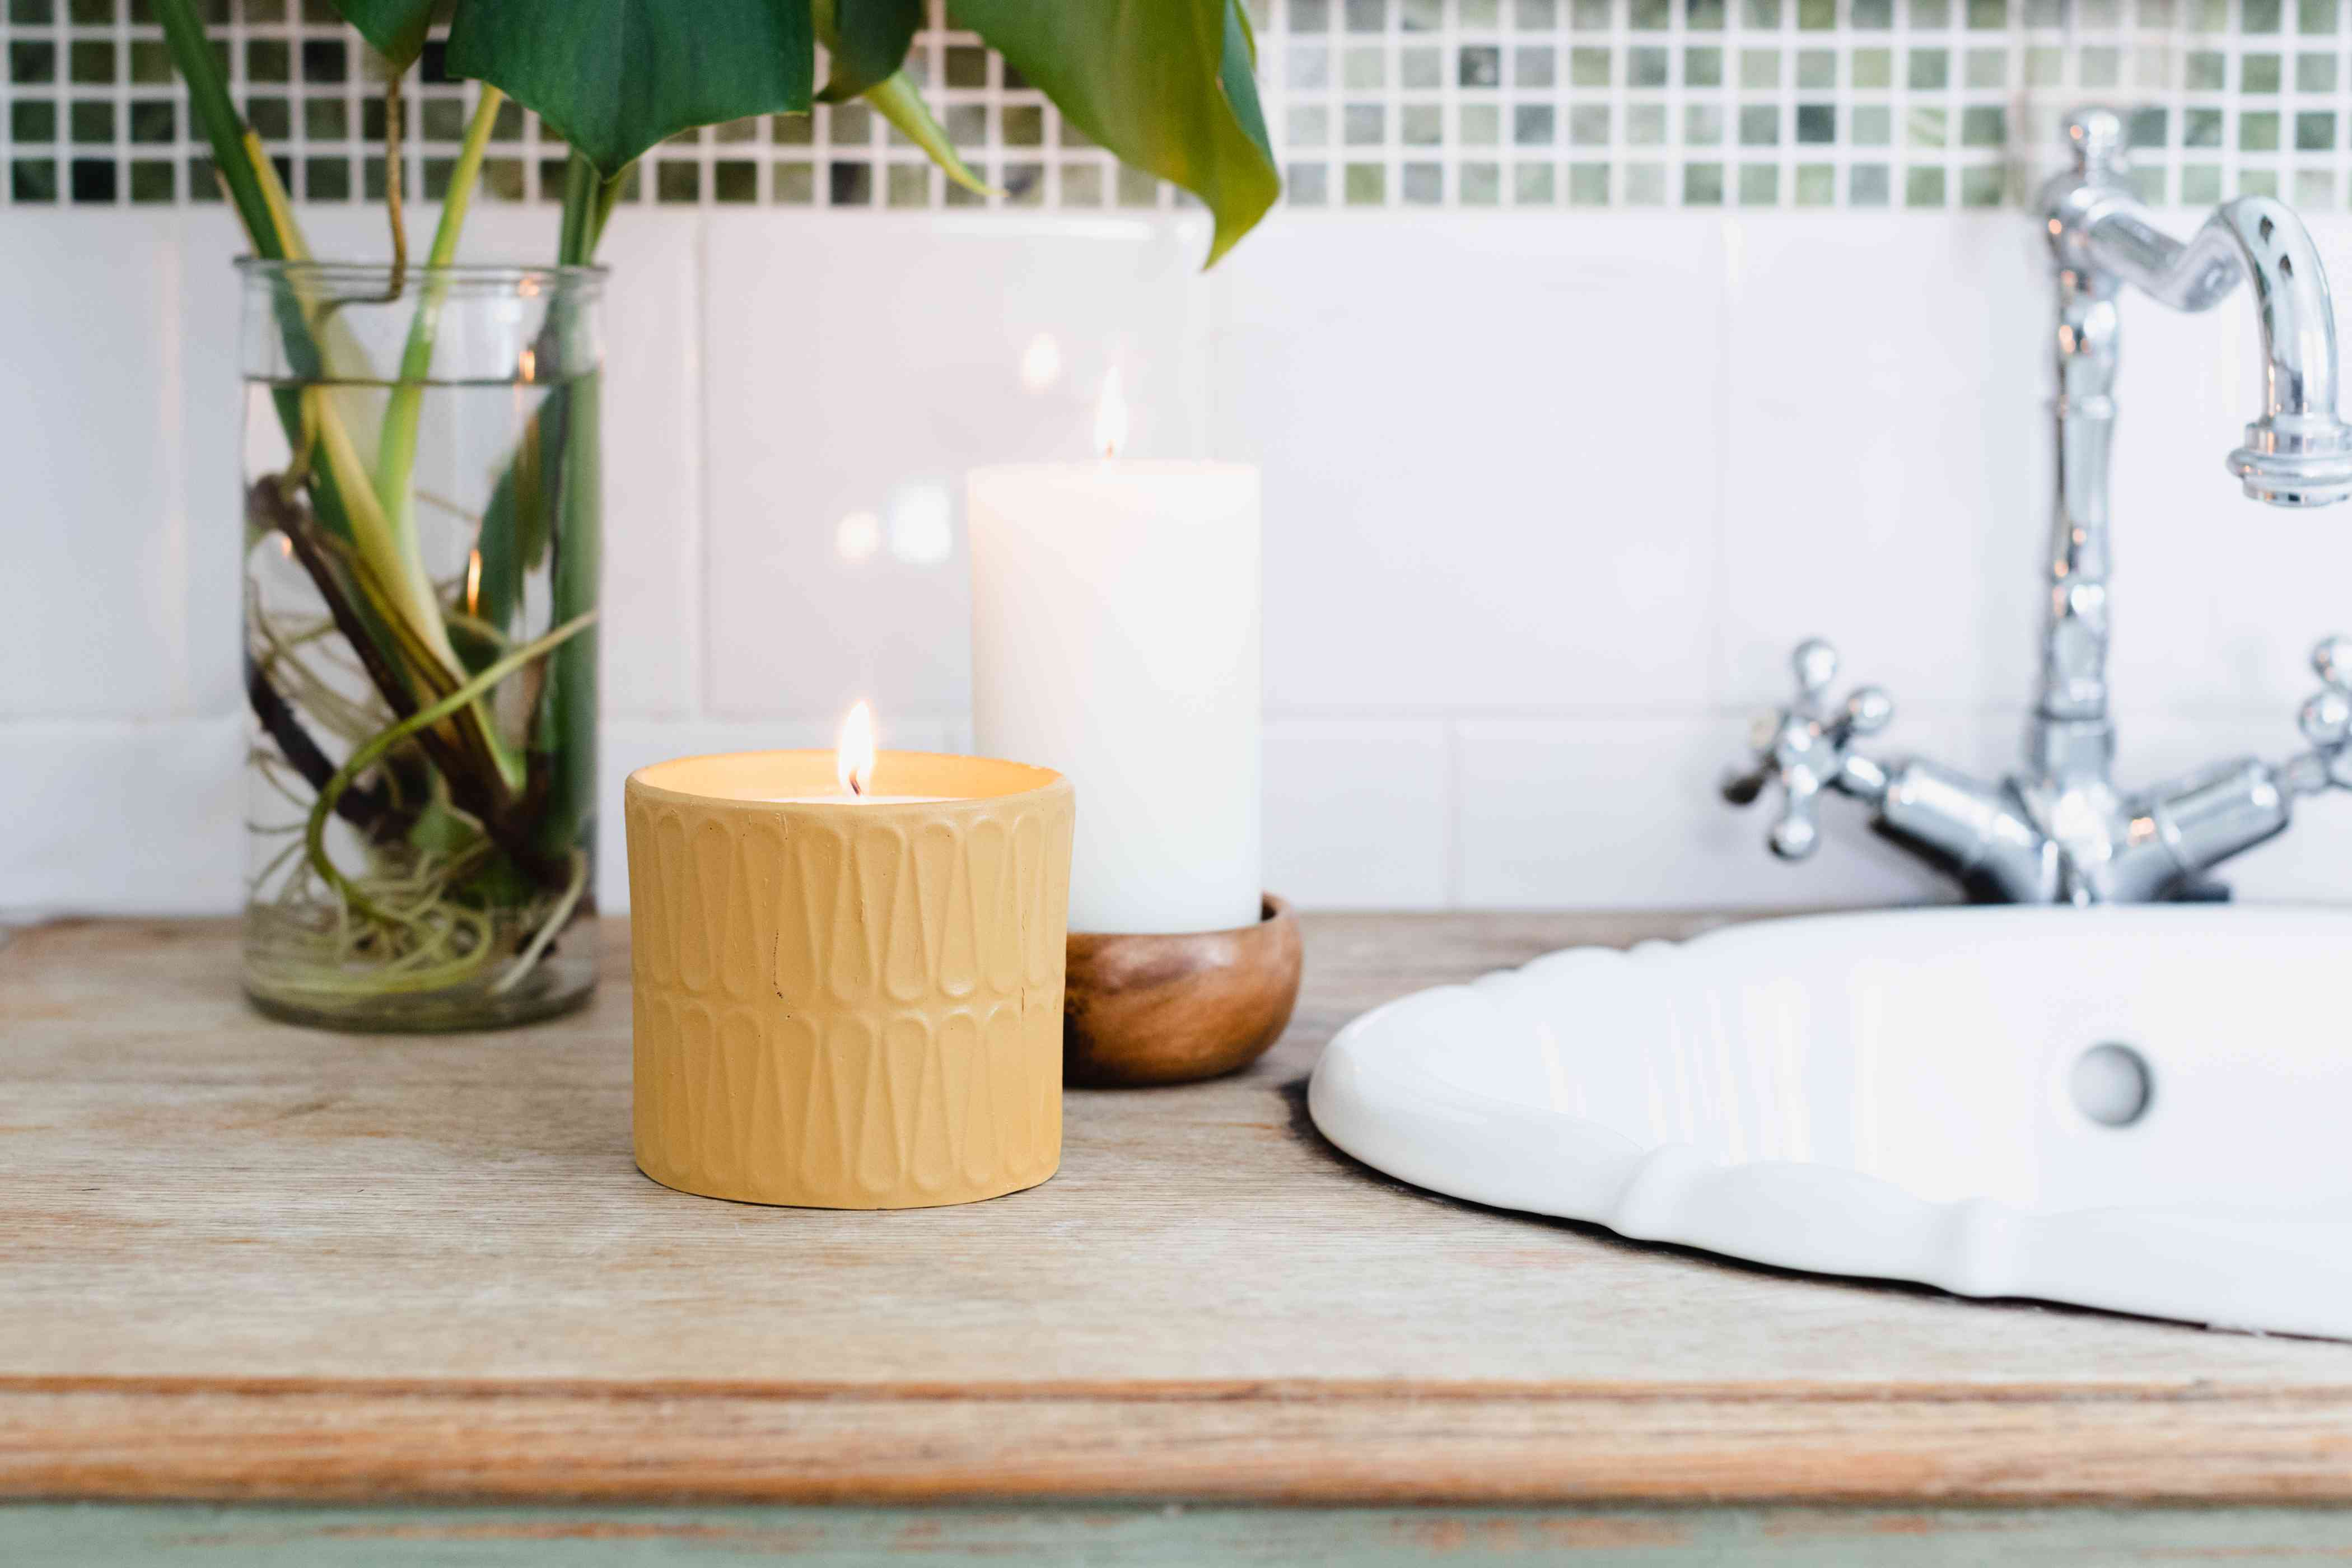 Two lighted candles on bathroom vanity surface reducing bathroom odors